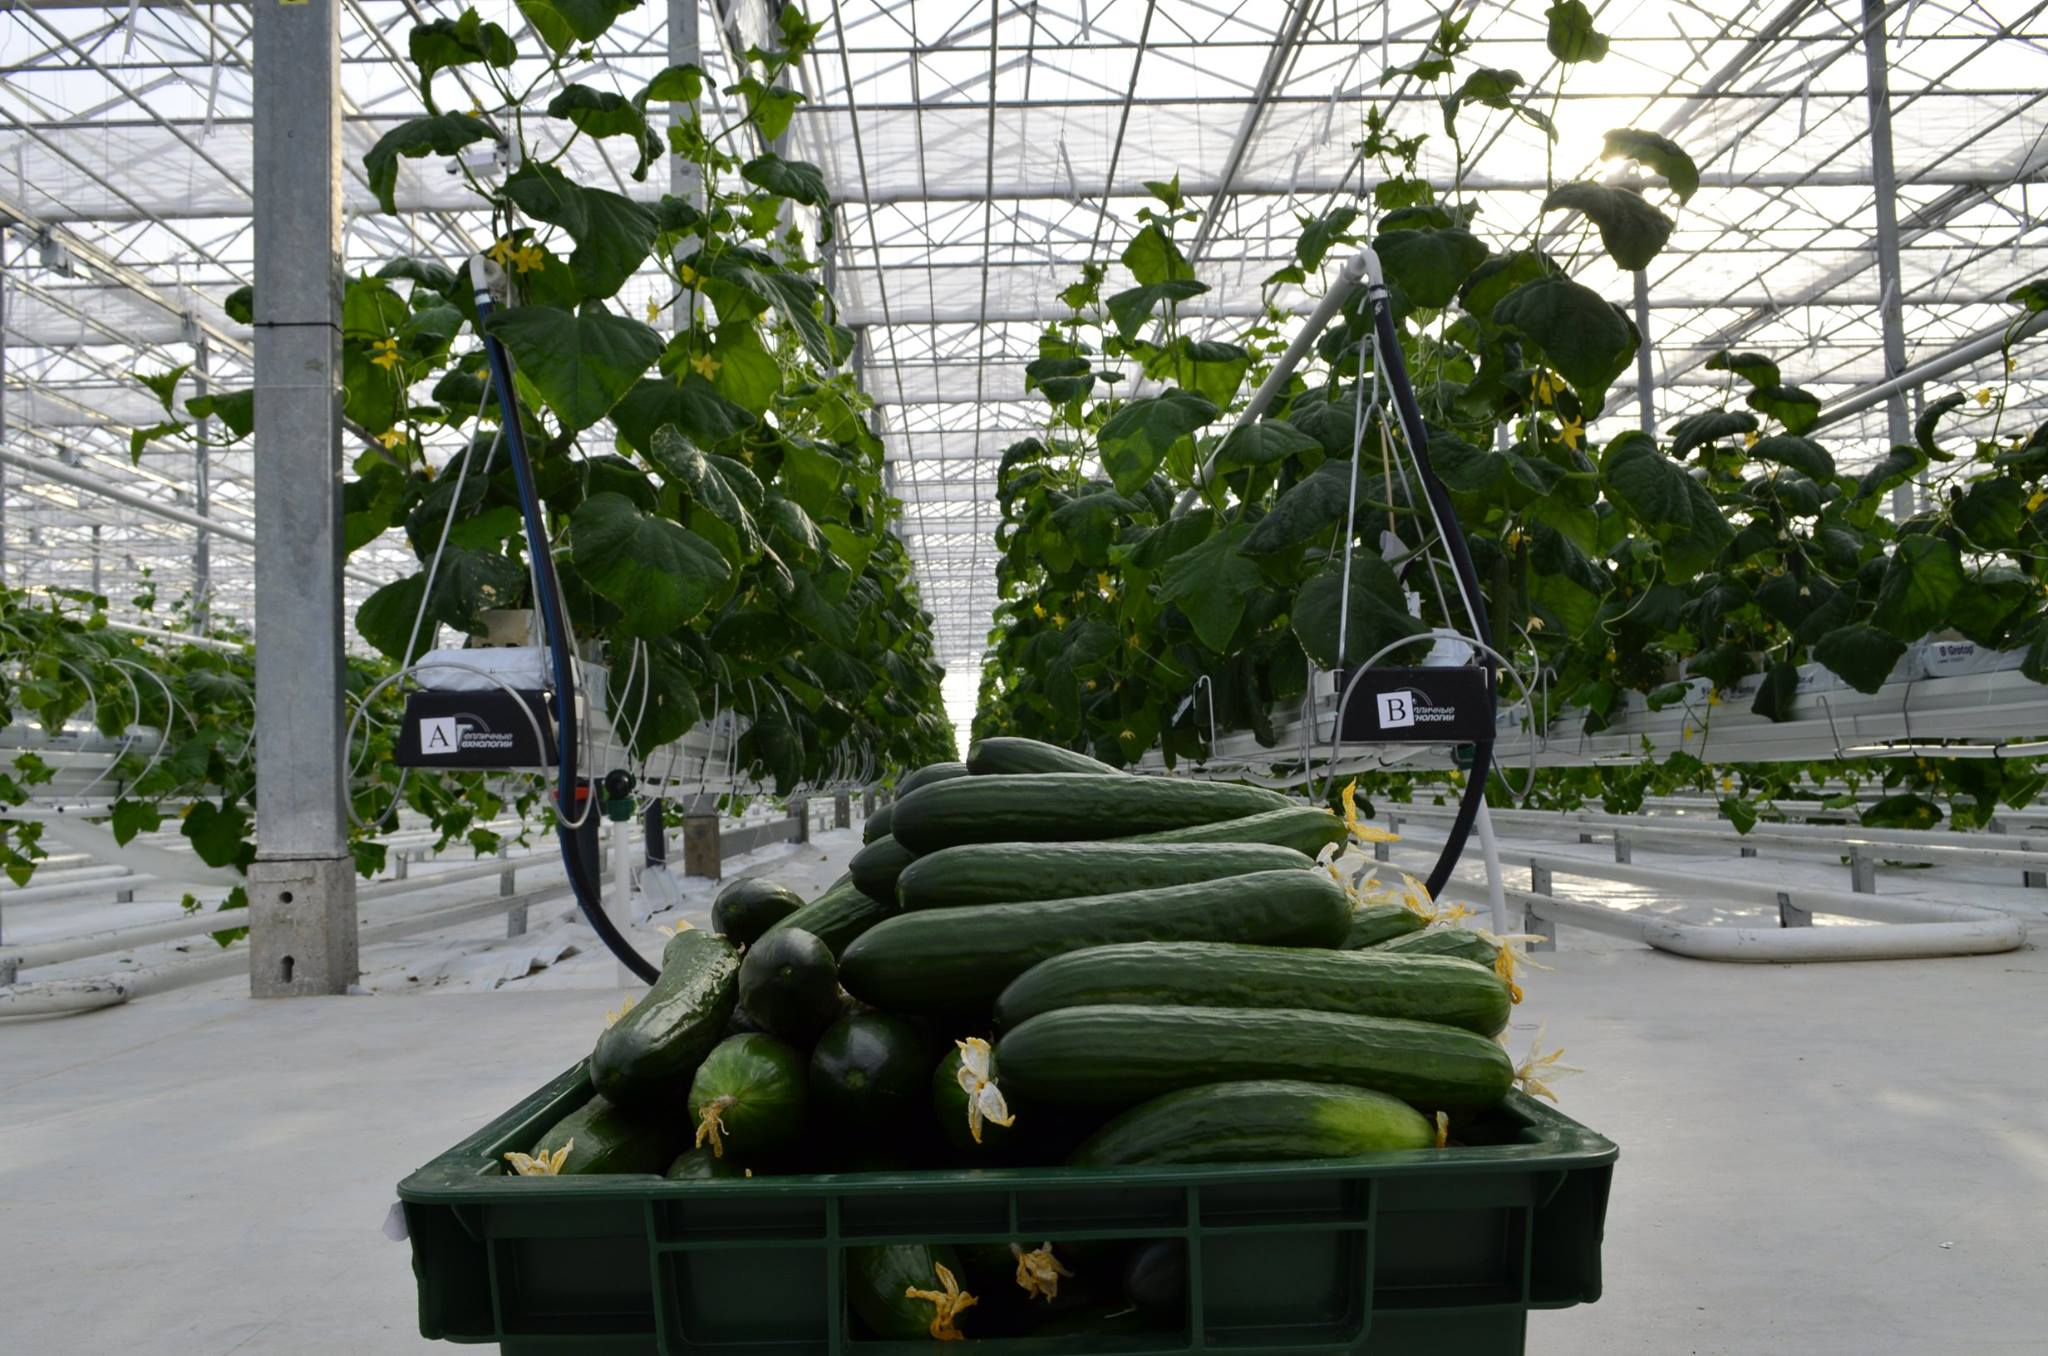 JSC Green's greenhouse in the Khabarovsk priority development area. Source: Facebook/ JGC Evergreen